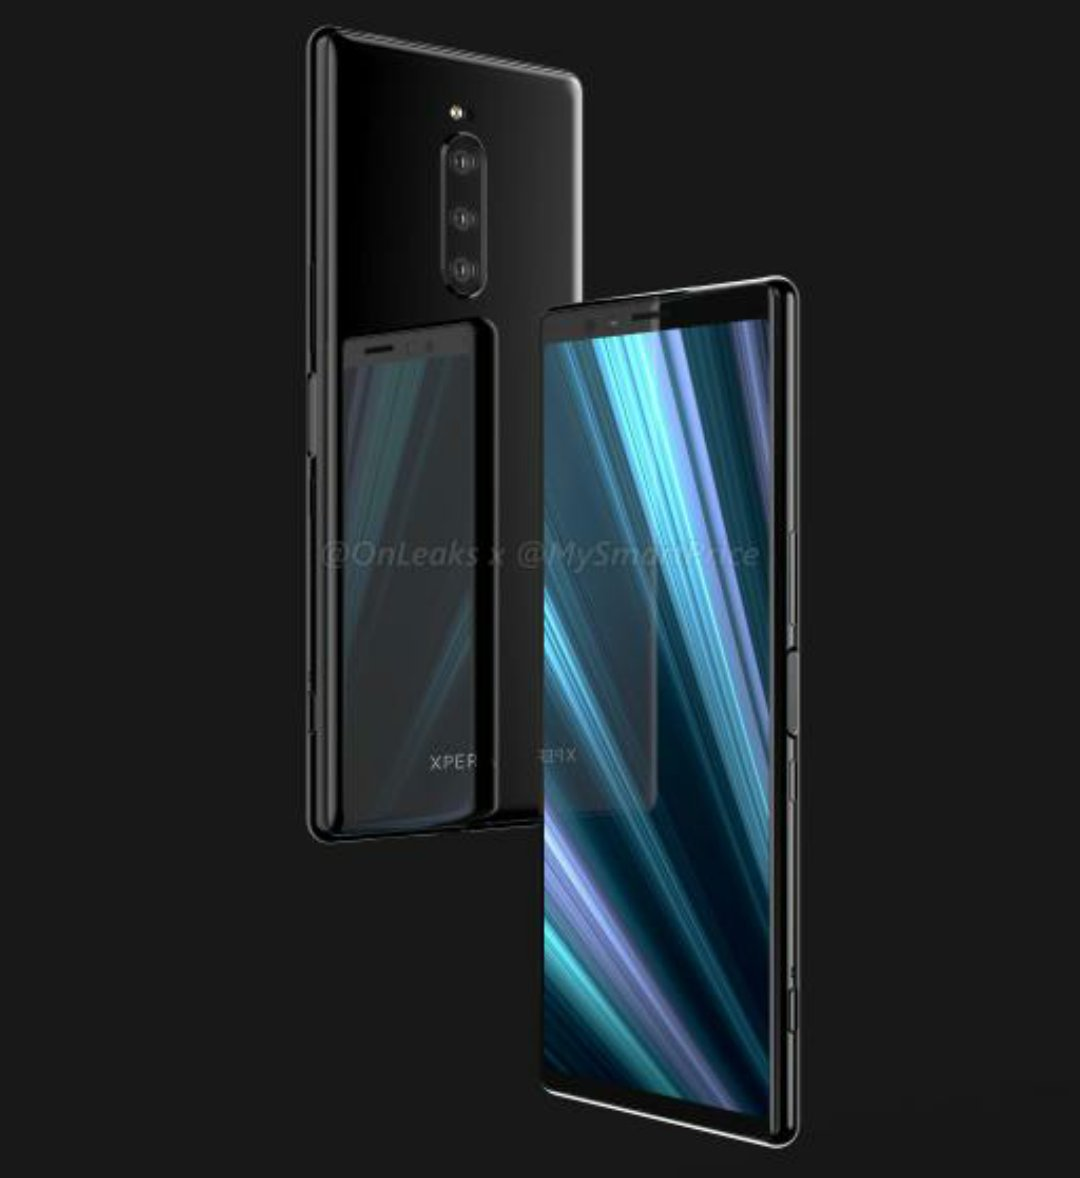 Xperia XZ4 Render by onleaks